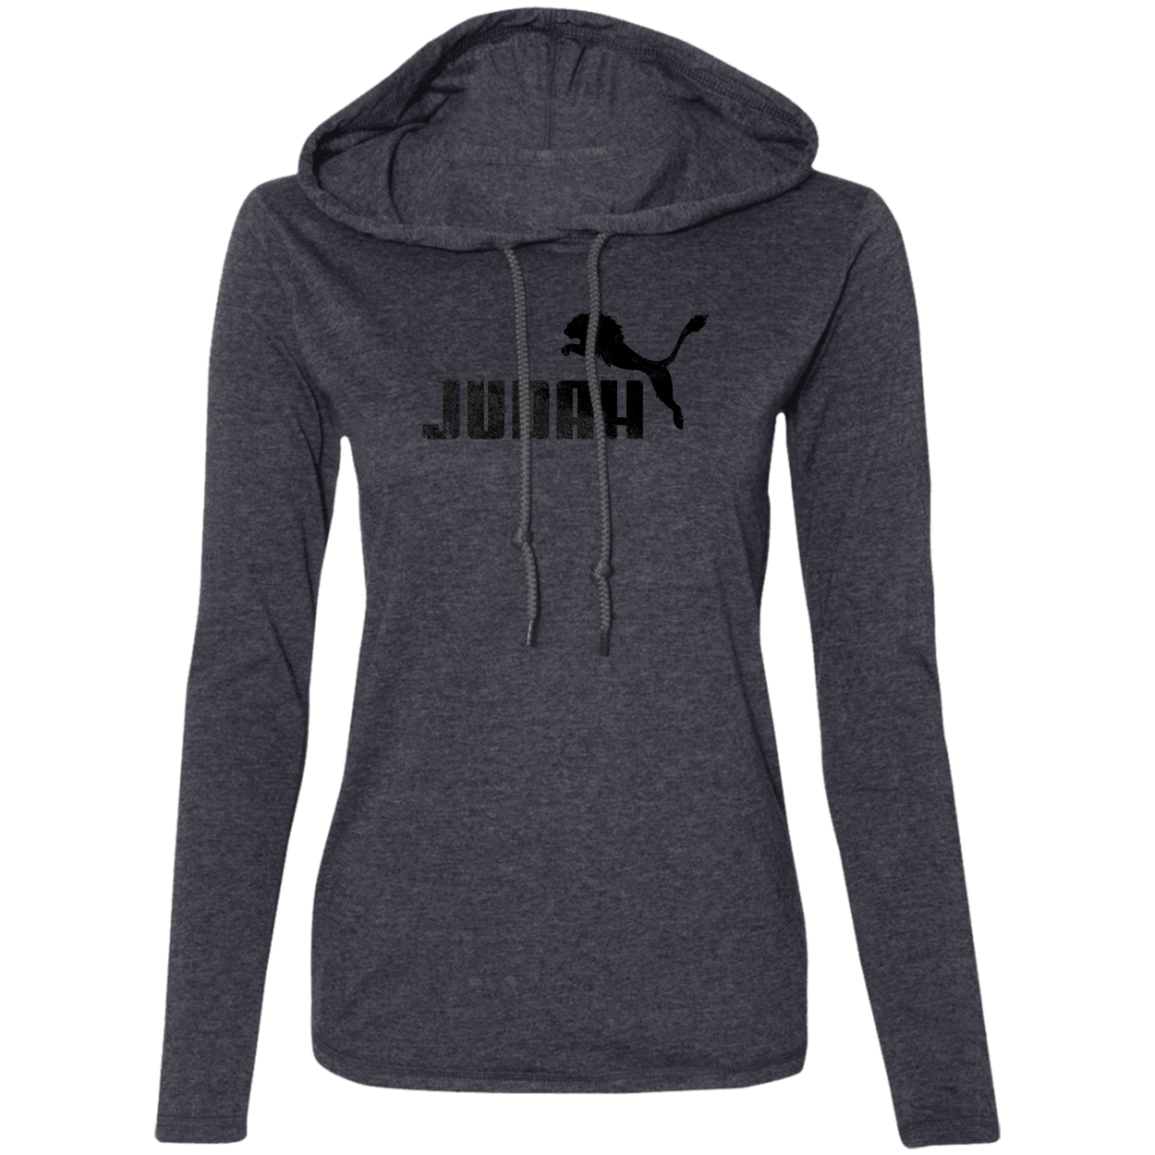 JF Judah Signature Hooded Tshirt (w)